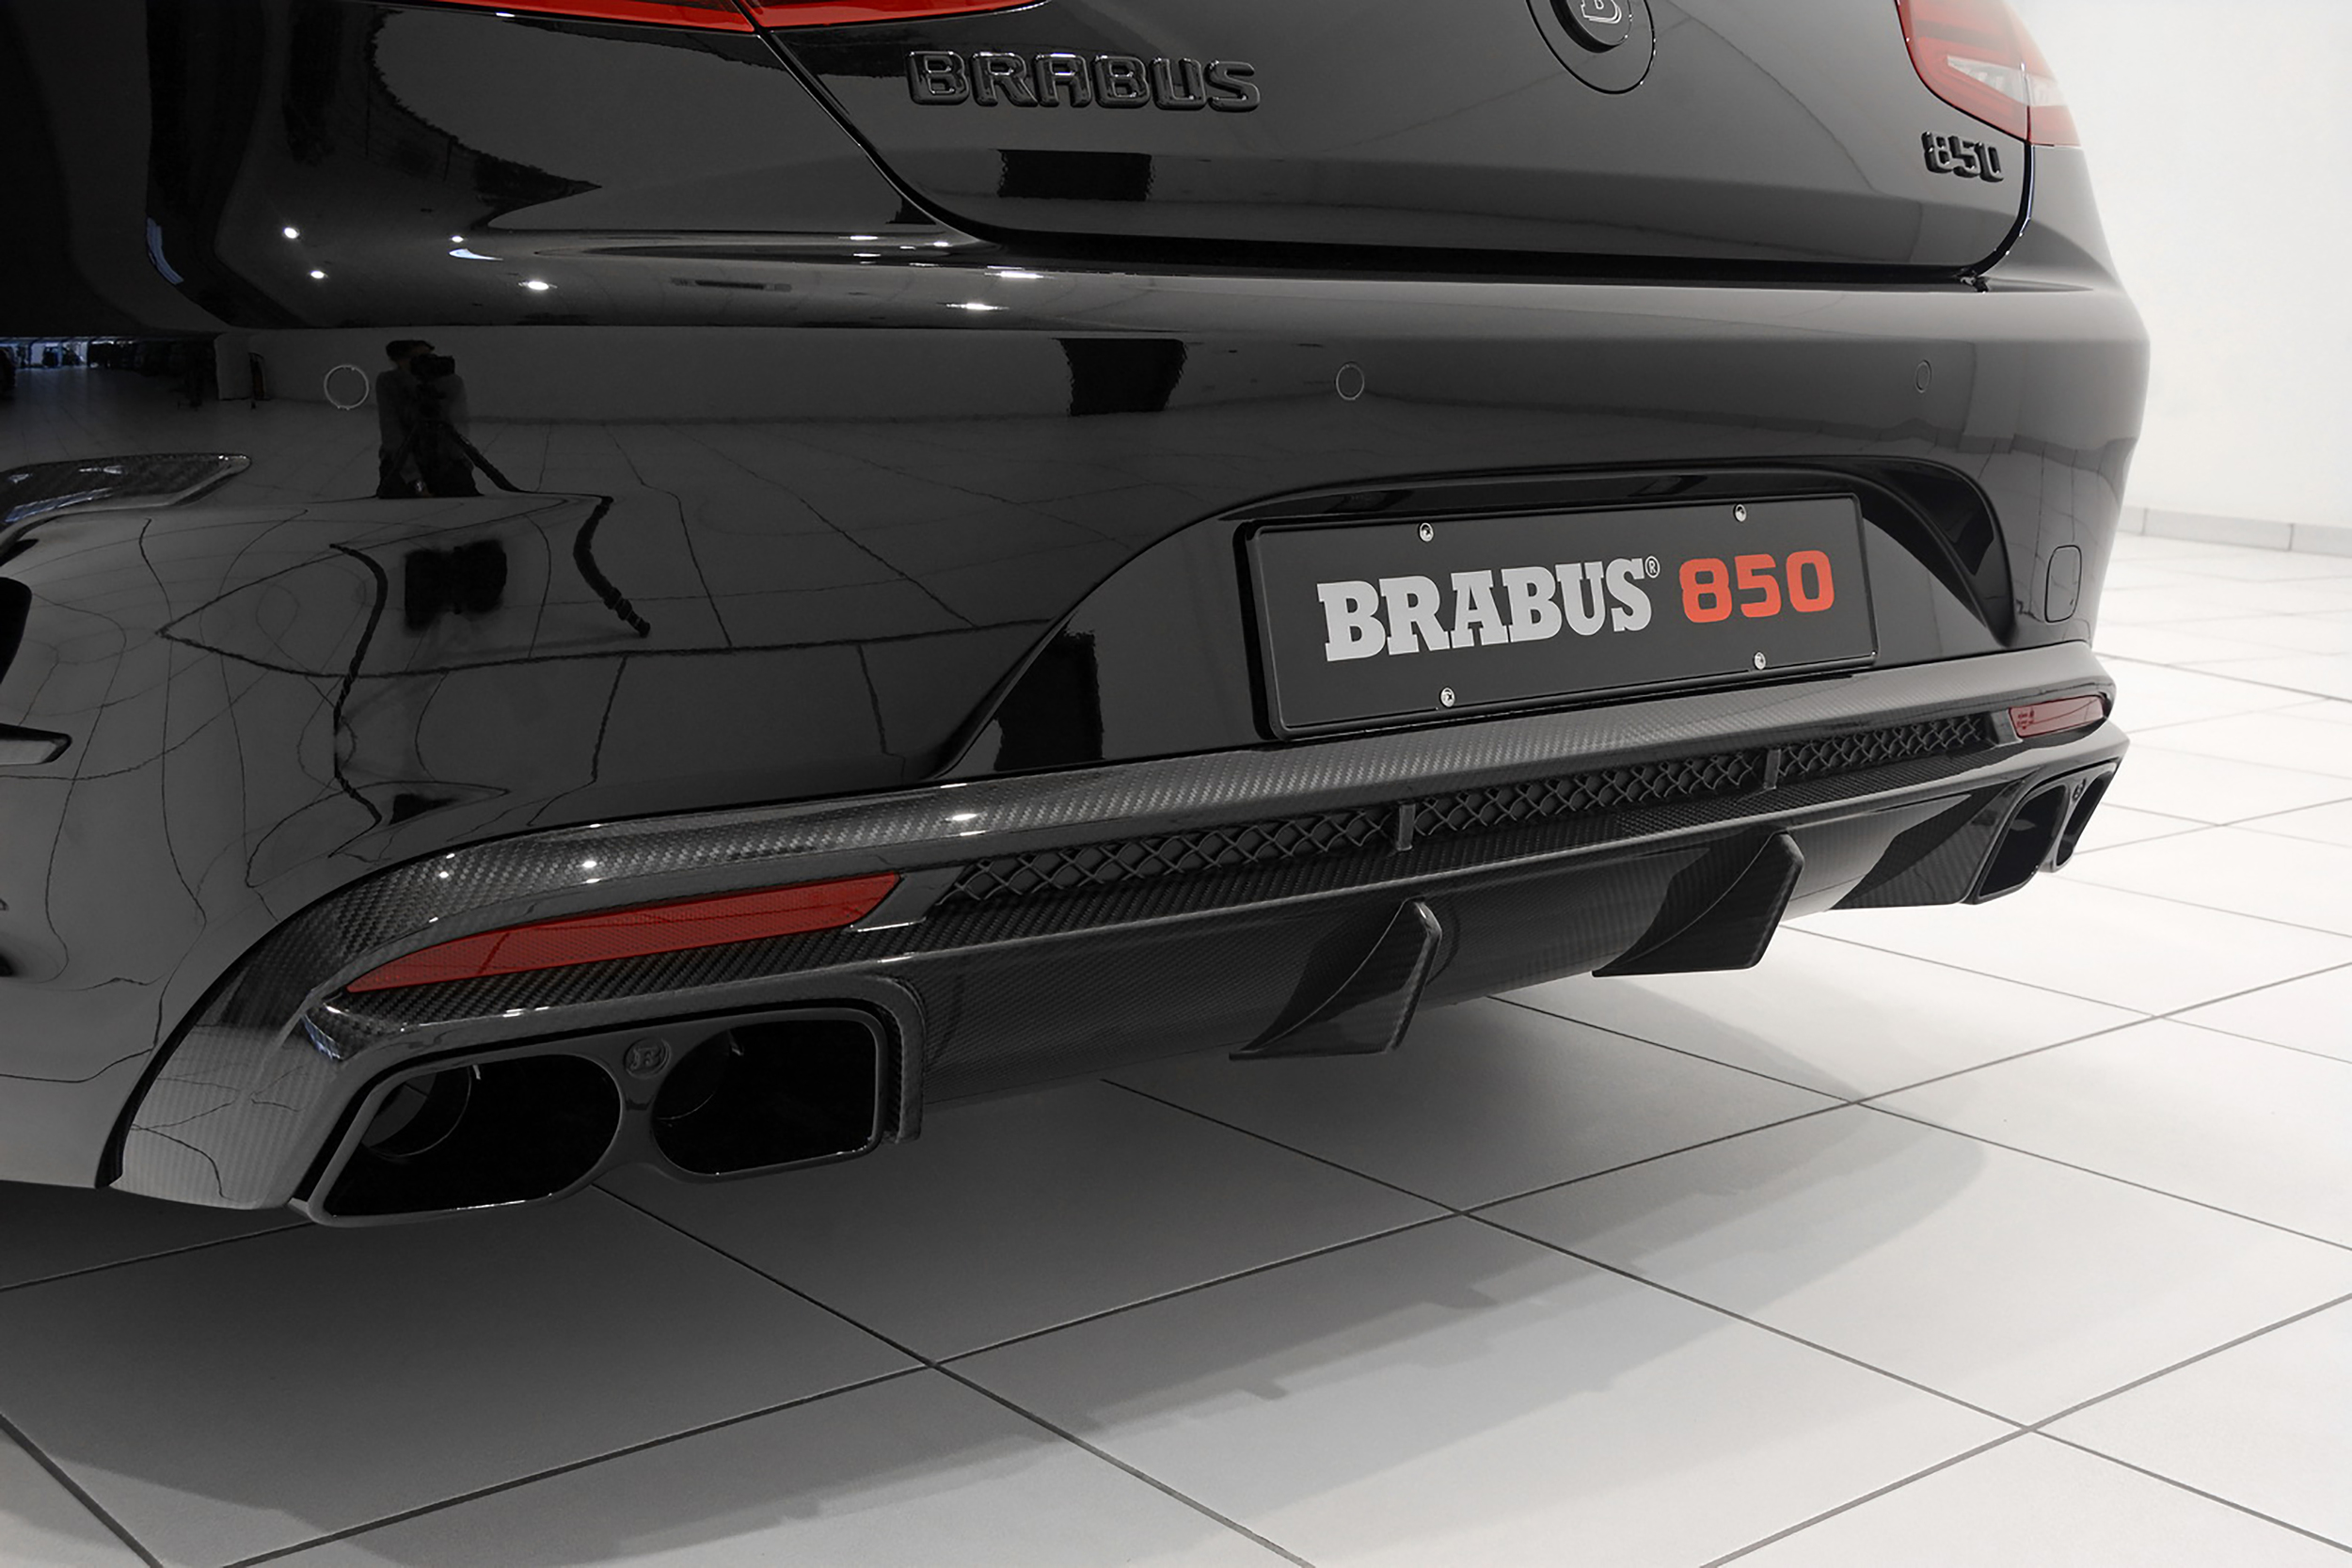 ' ' from the web at 'http://www.blogcdn.com/slideshows/images/slides/335/950/4/S3359504/slug/l/brabus-s-class-coupe-25-1.jpg'